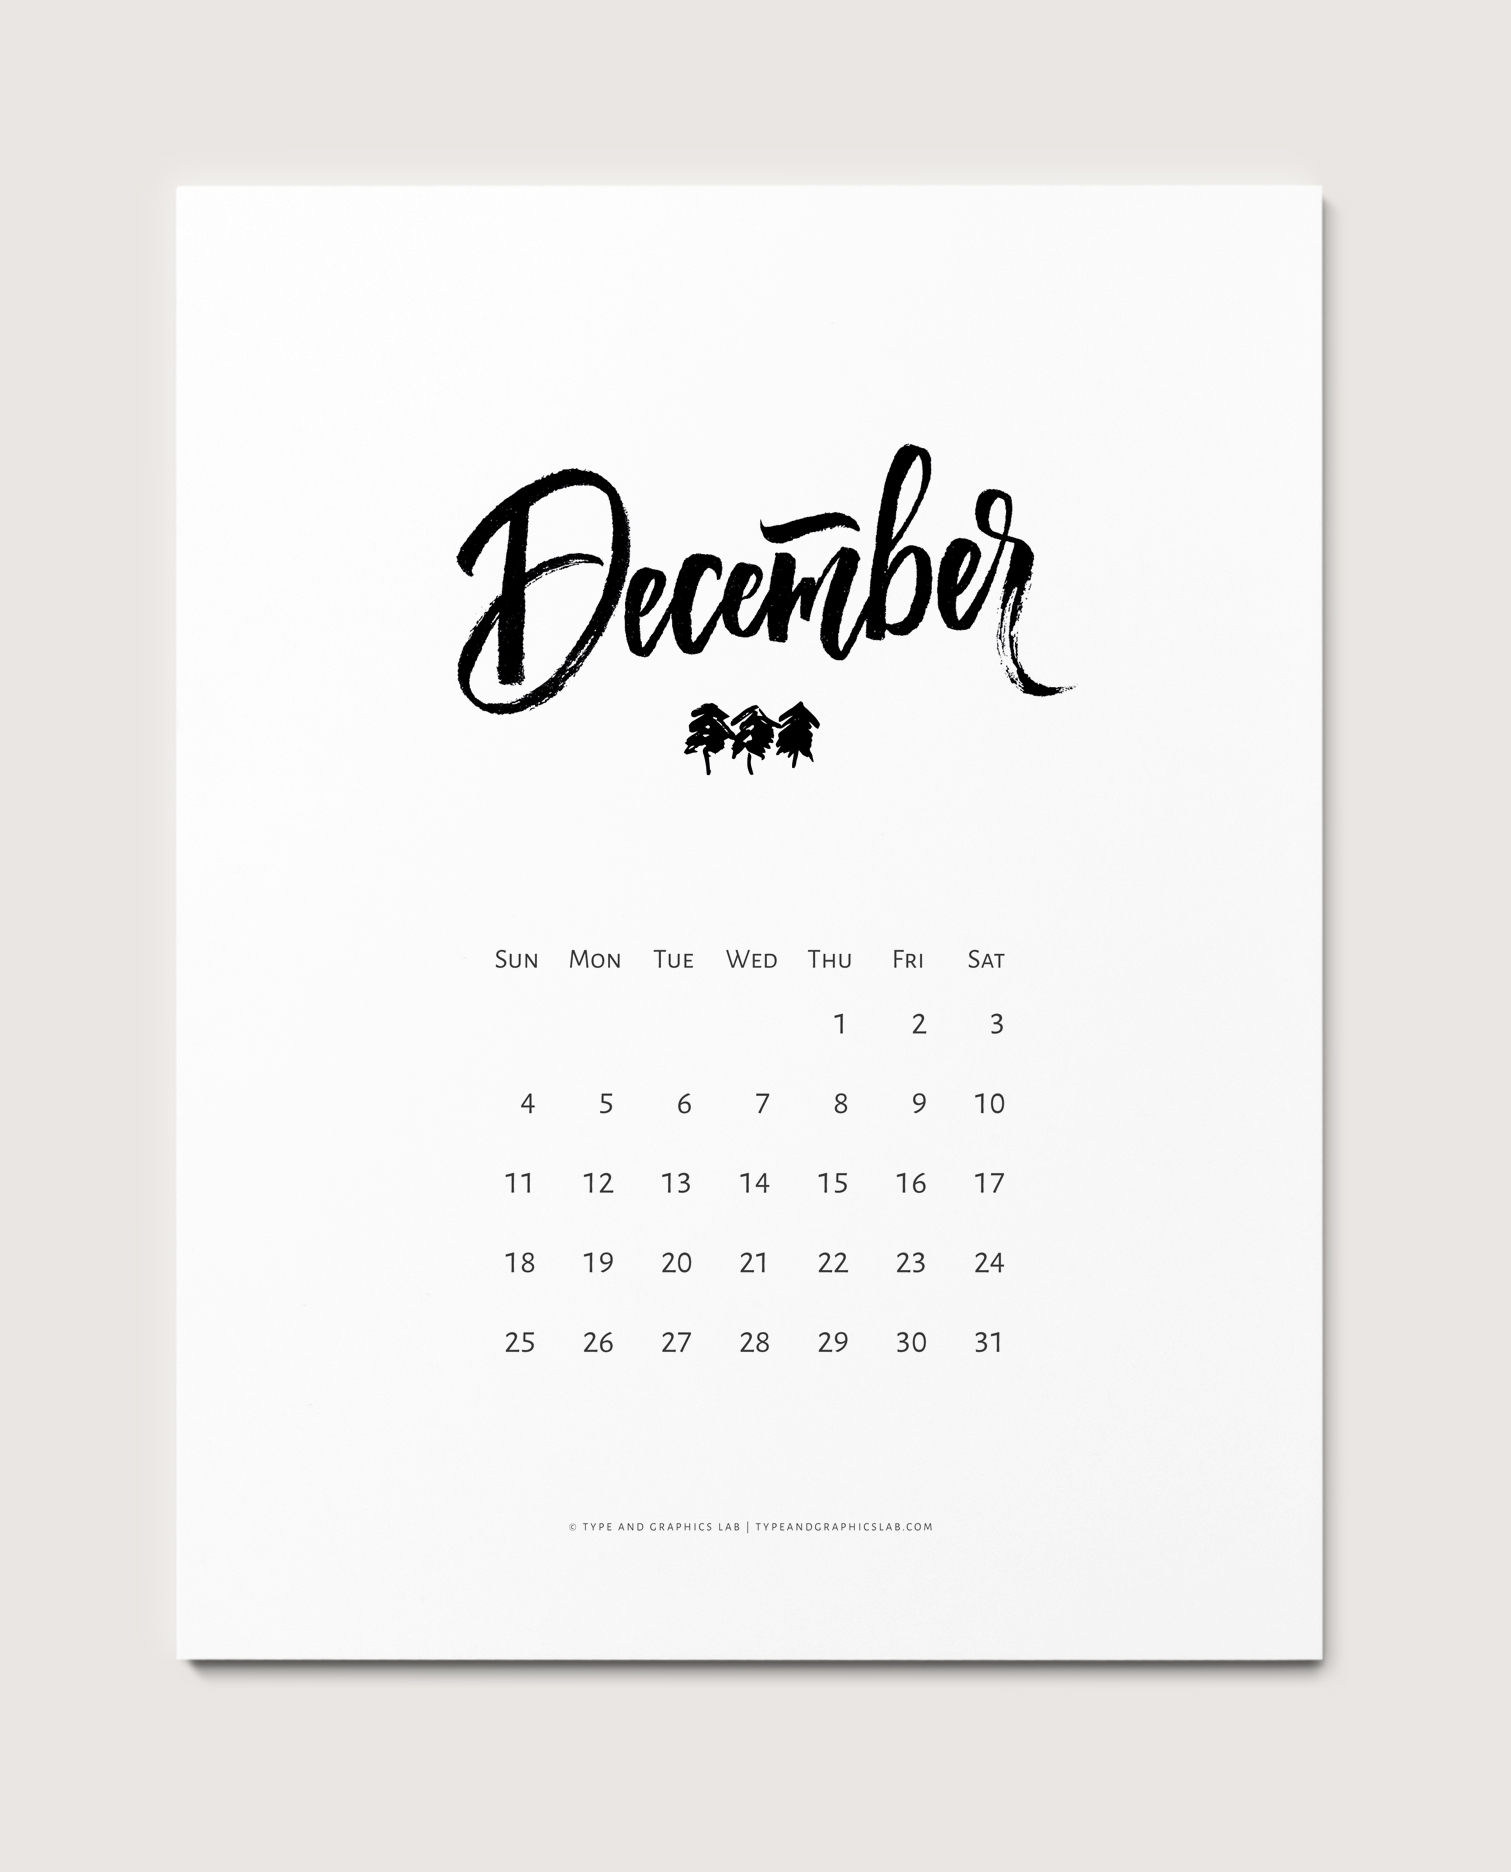 Free   printable calendar for December 2016. For personal use only | © typeandgraphicslab.com